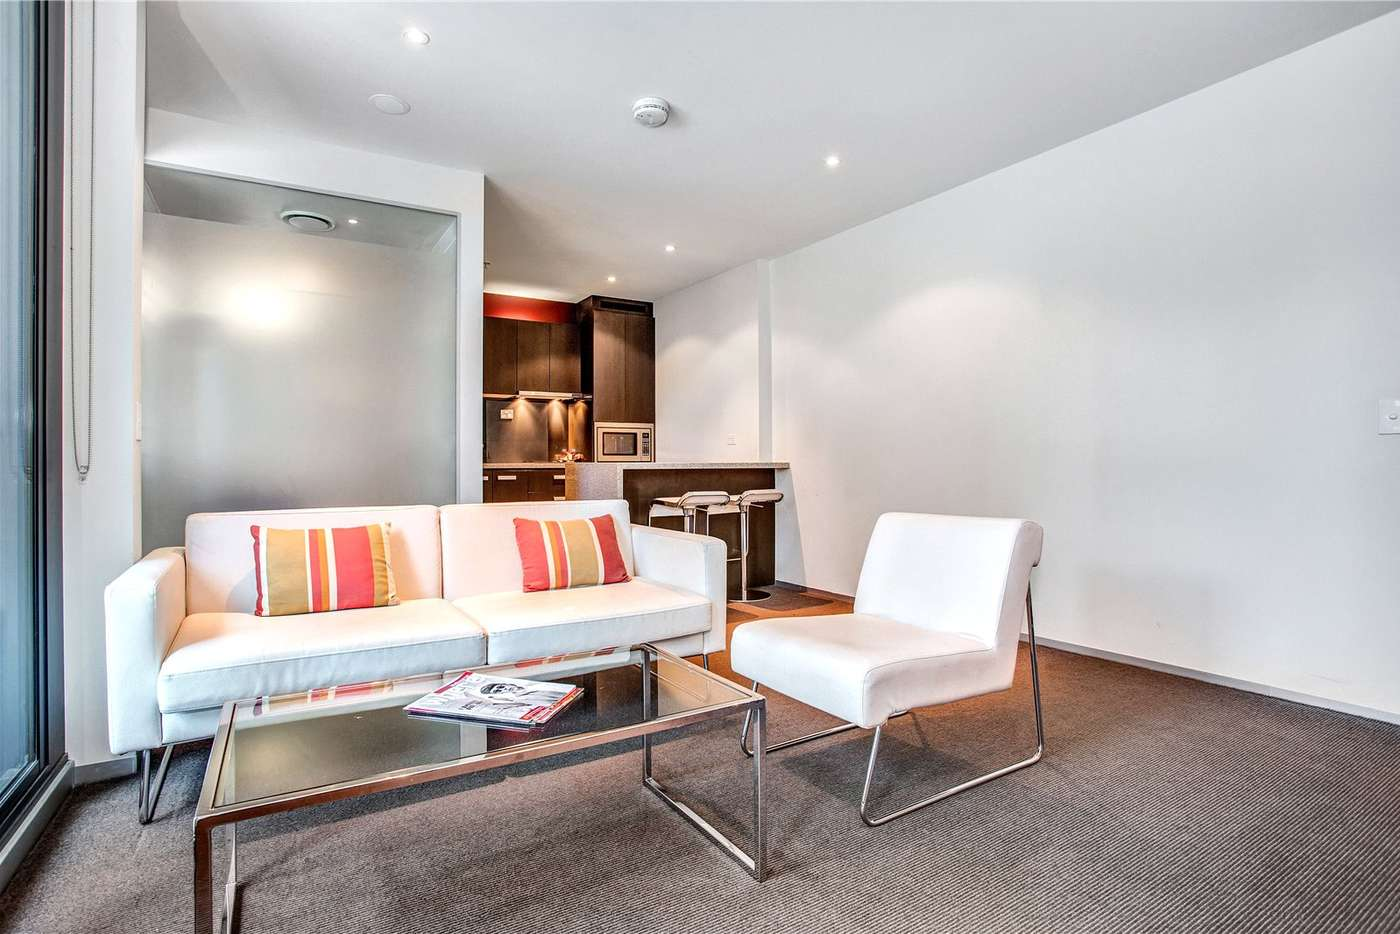 Main view of Homely apartment listing, 512/181 ABeckett Street, Melbourne VIC 3000